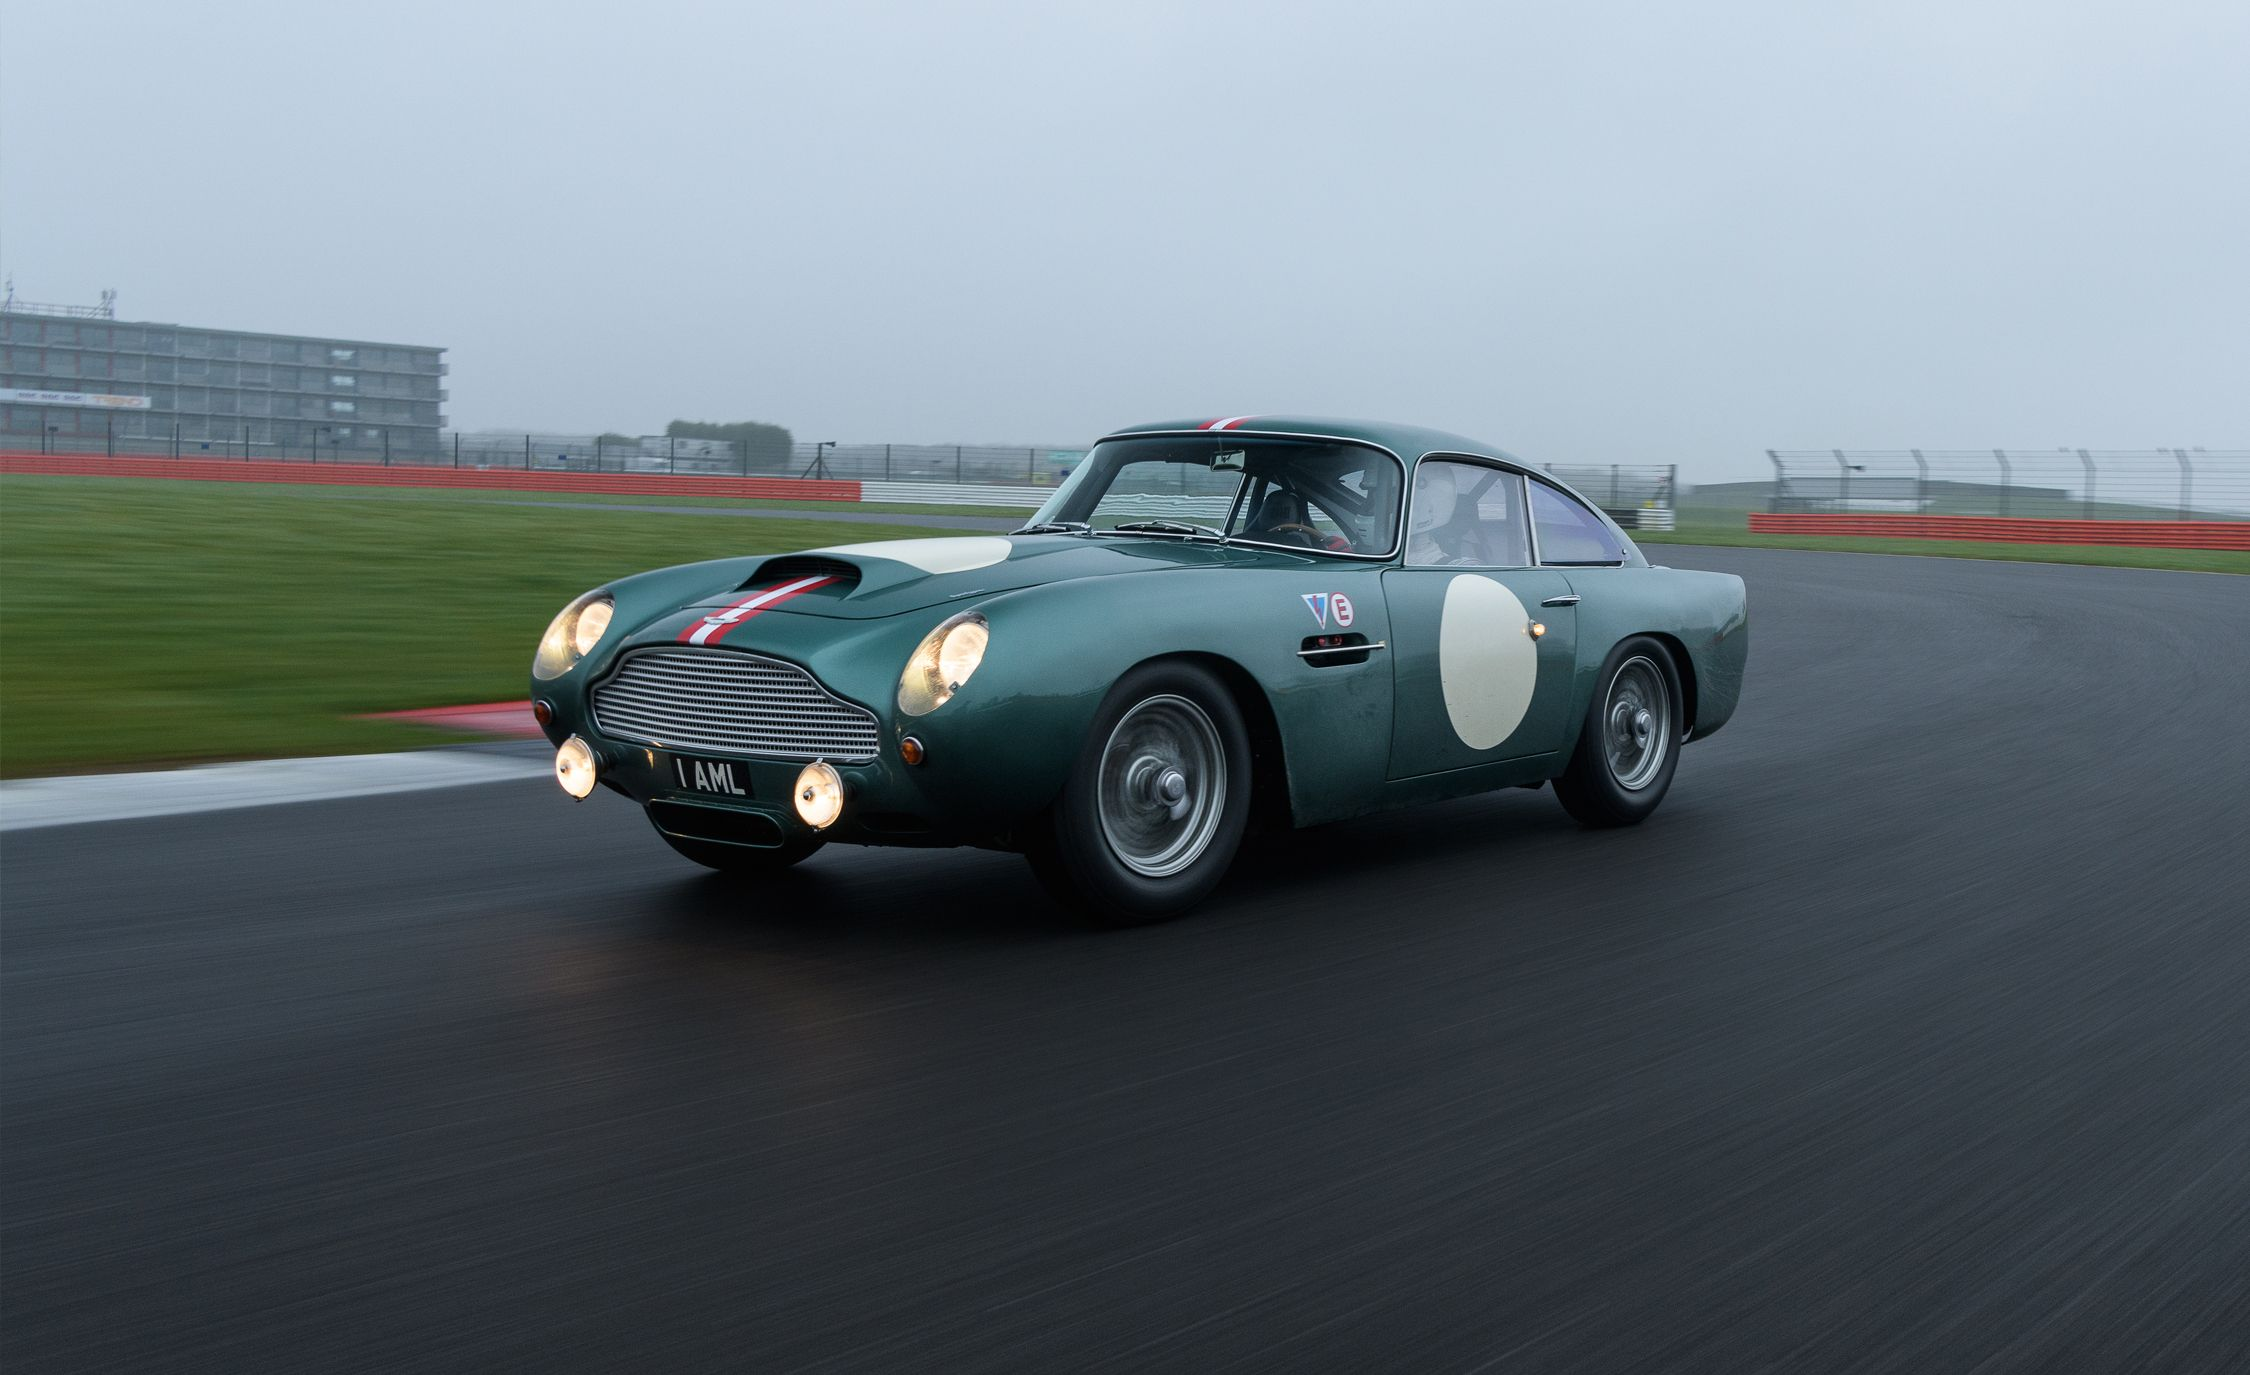 aston martin db4 gt continuation driven: a brand-new old car